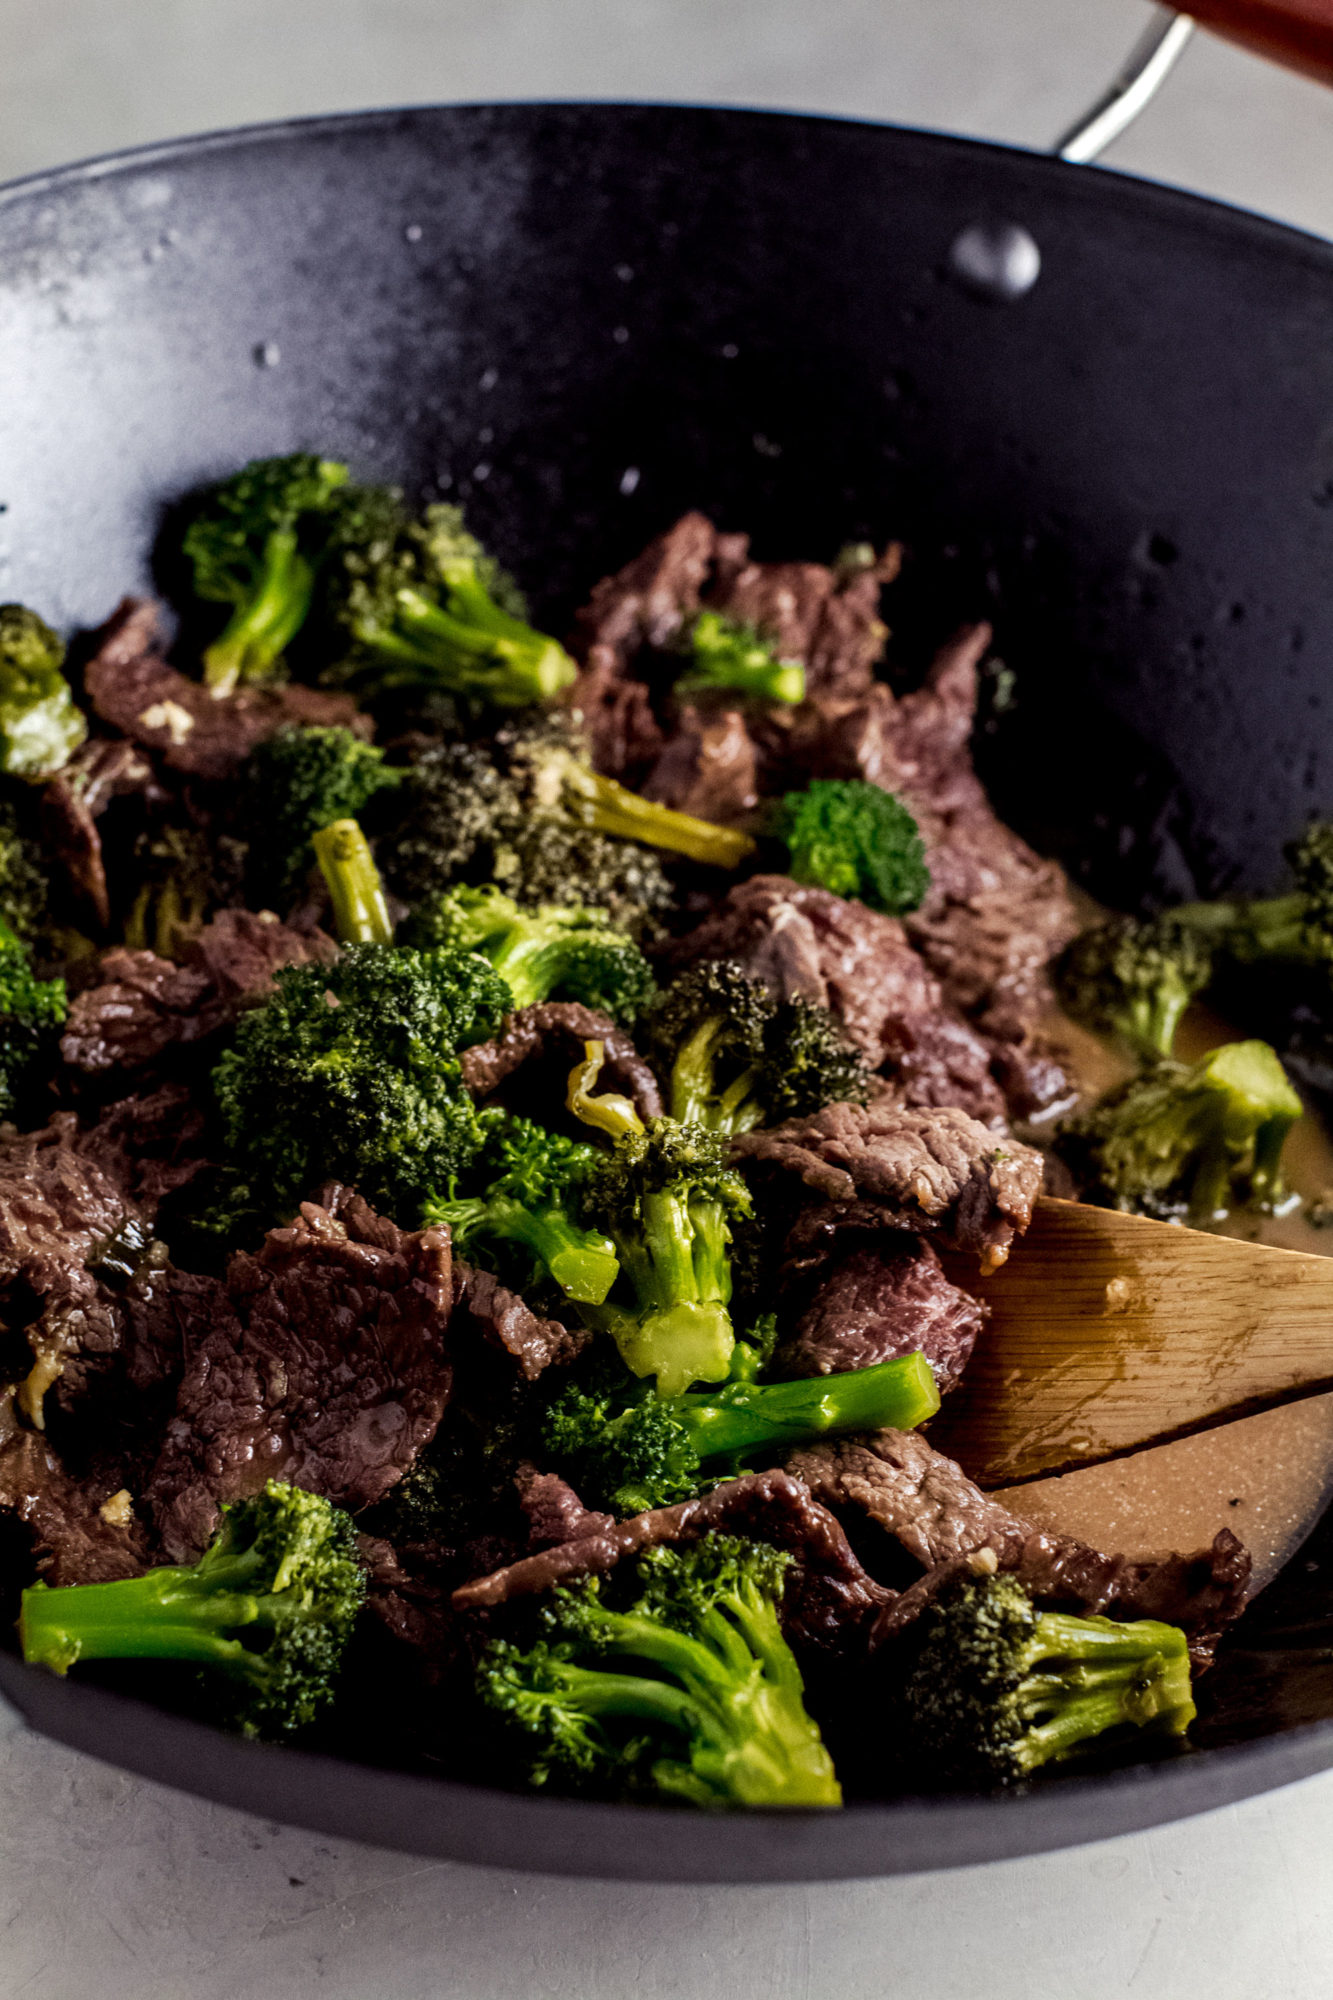 Beef and broccoli stir fry in a black wok.